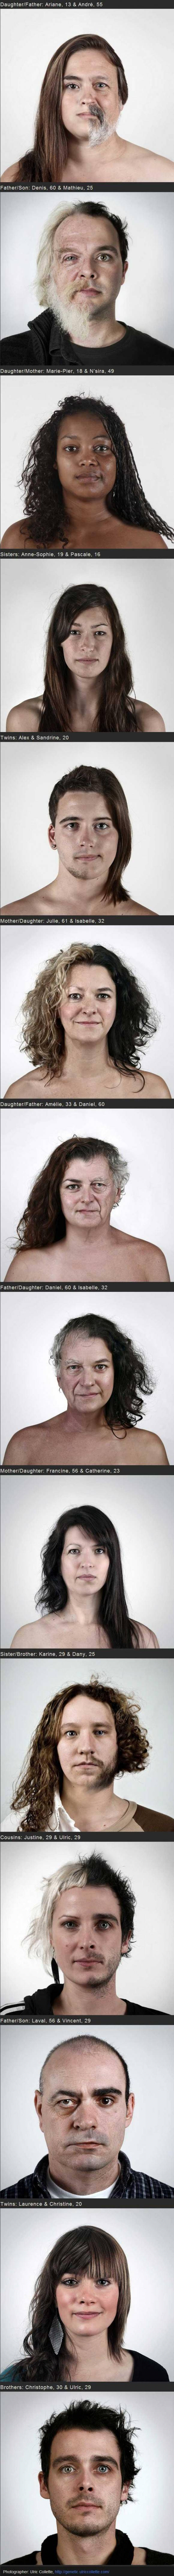 Genetics are awesome